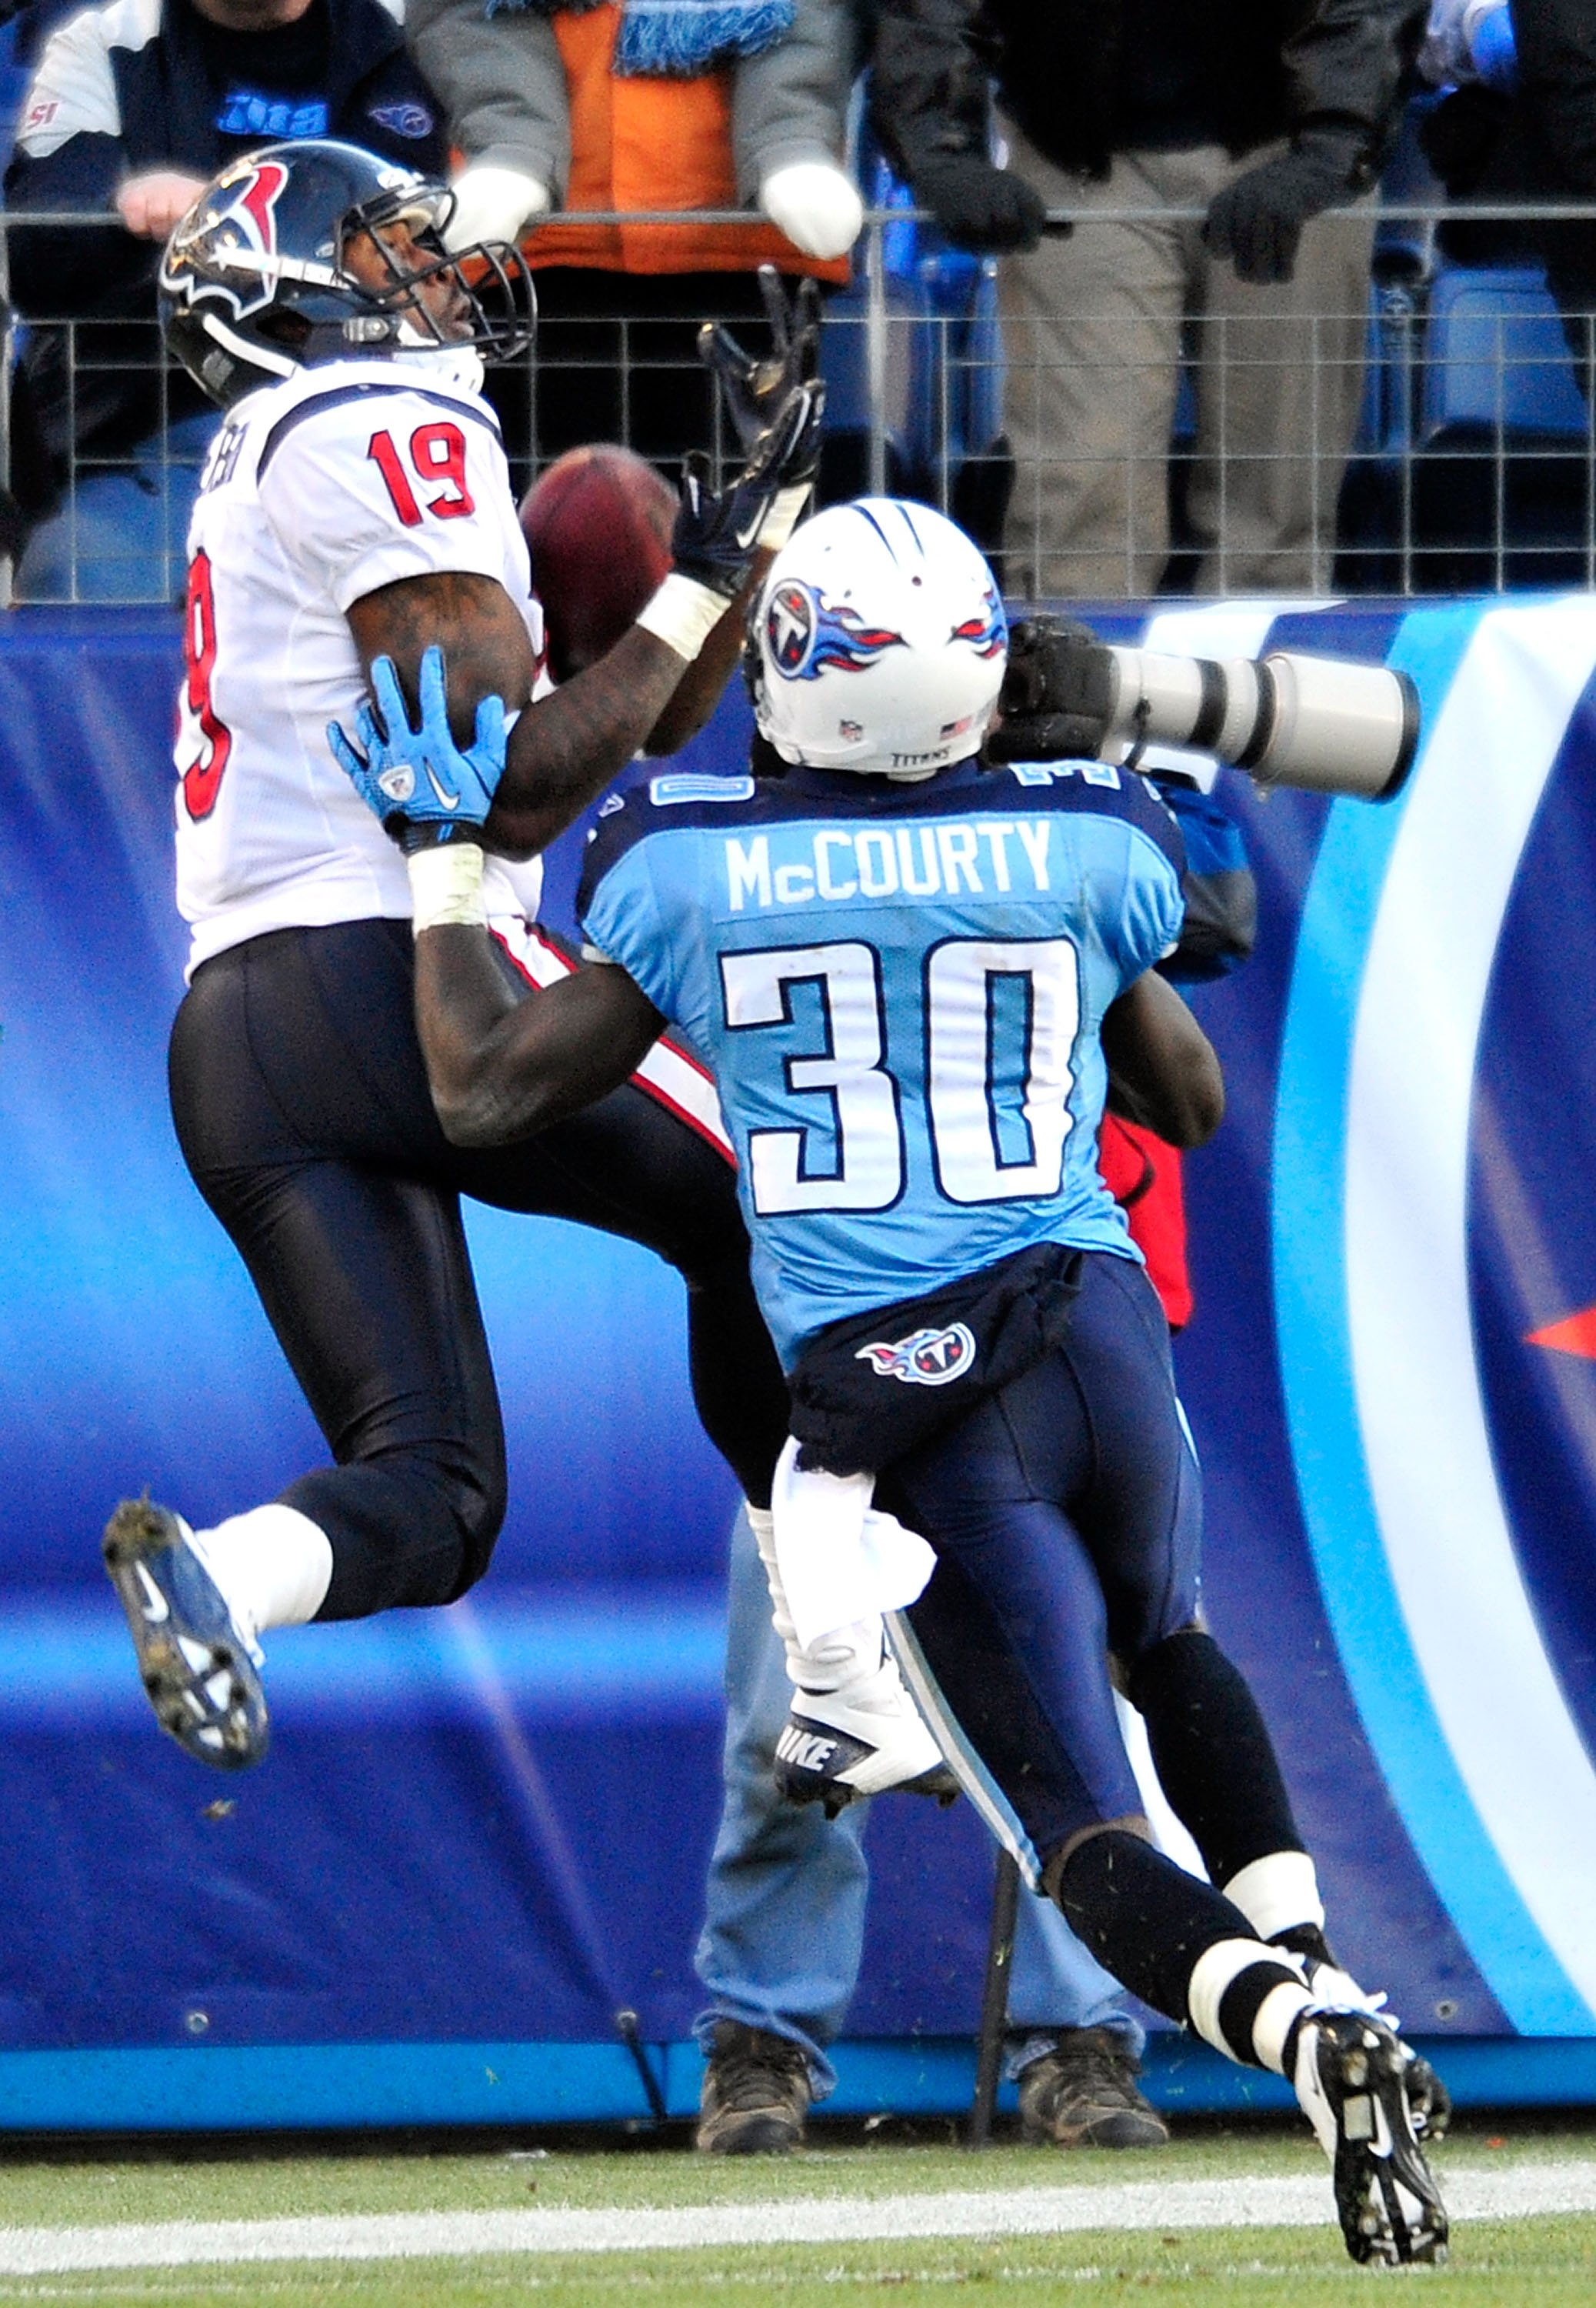 NASHVILLE, TN - DECEMBER 19:  Dorin Dickerson #19 of the Houston Texans can't make the touchdown catch as Jason McCourty #30 of the Tennessee Titans defends at LP Field on December 19, 2010 in Nashville, Tennessee. The Titans defeated the Texans, 31-17.